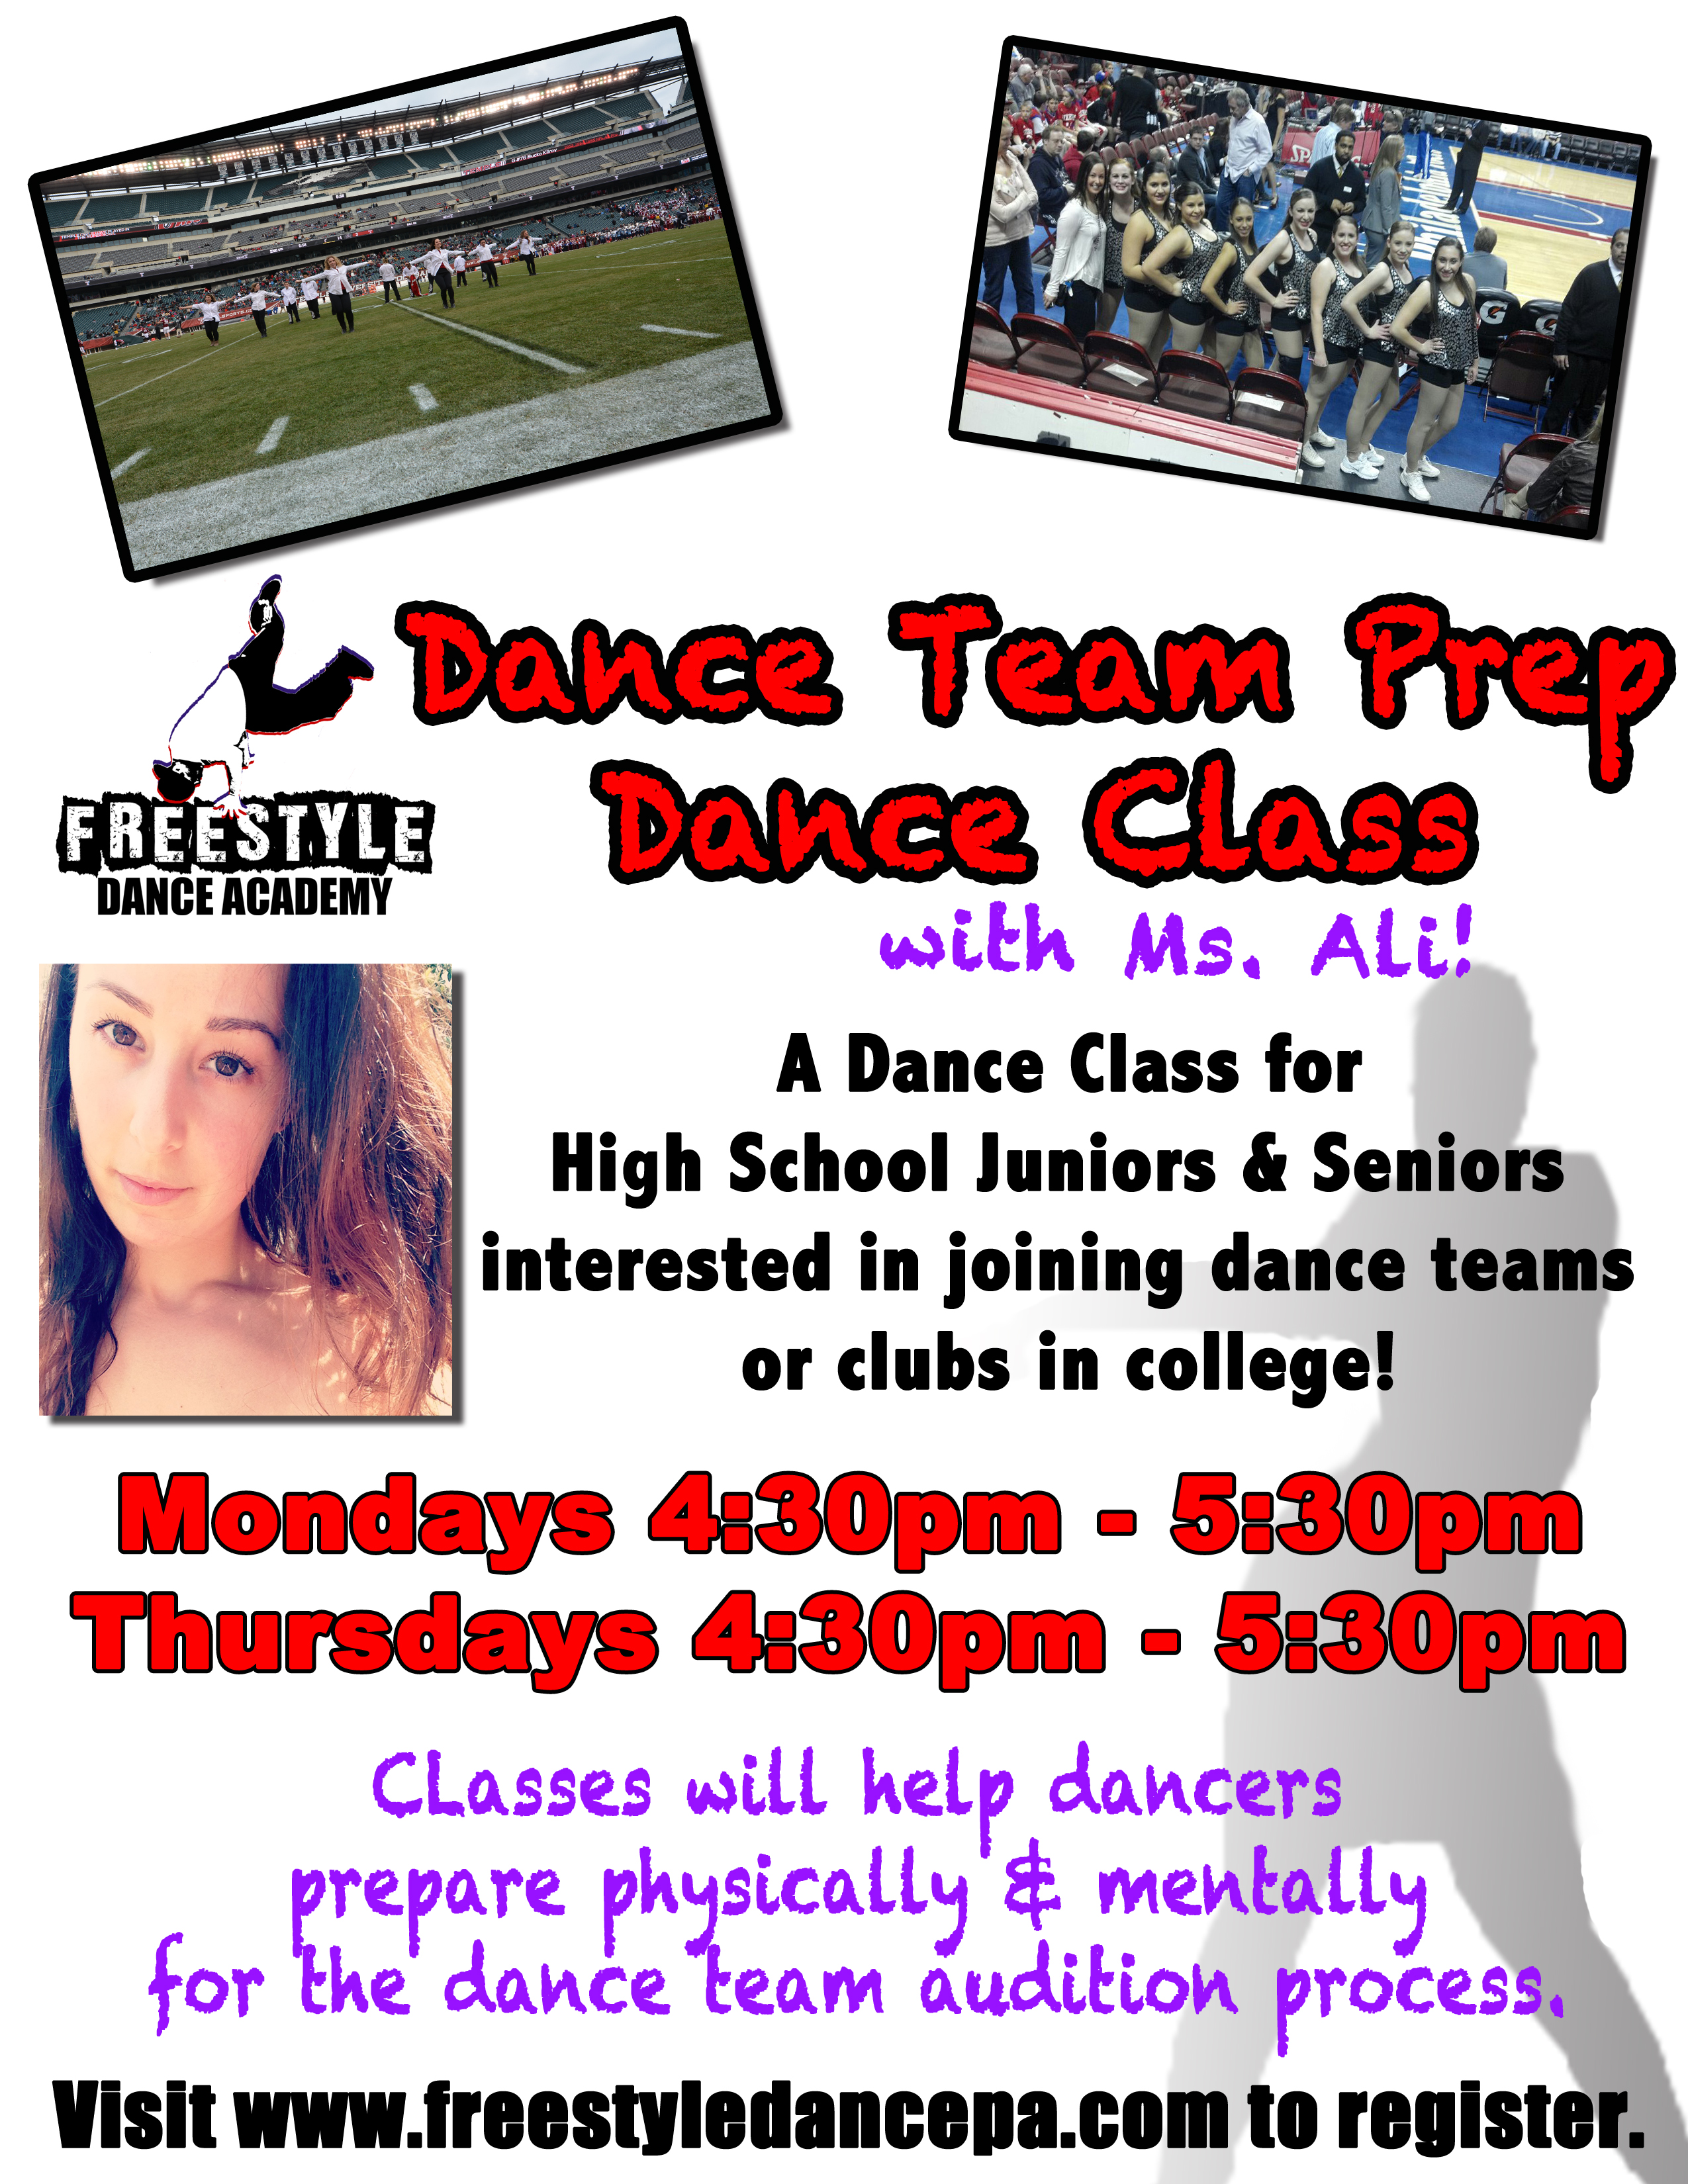 dance team dance class - Freestyle Dance Academy